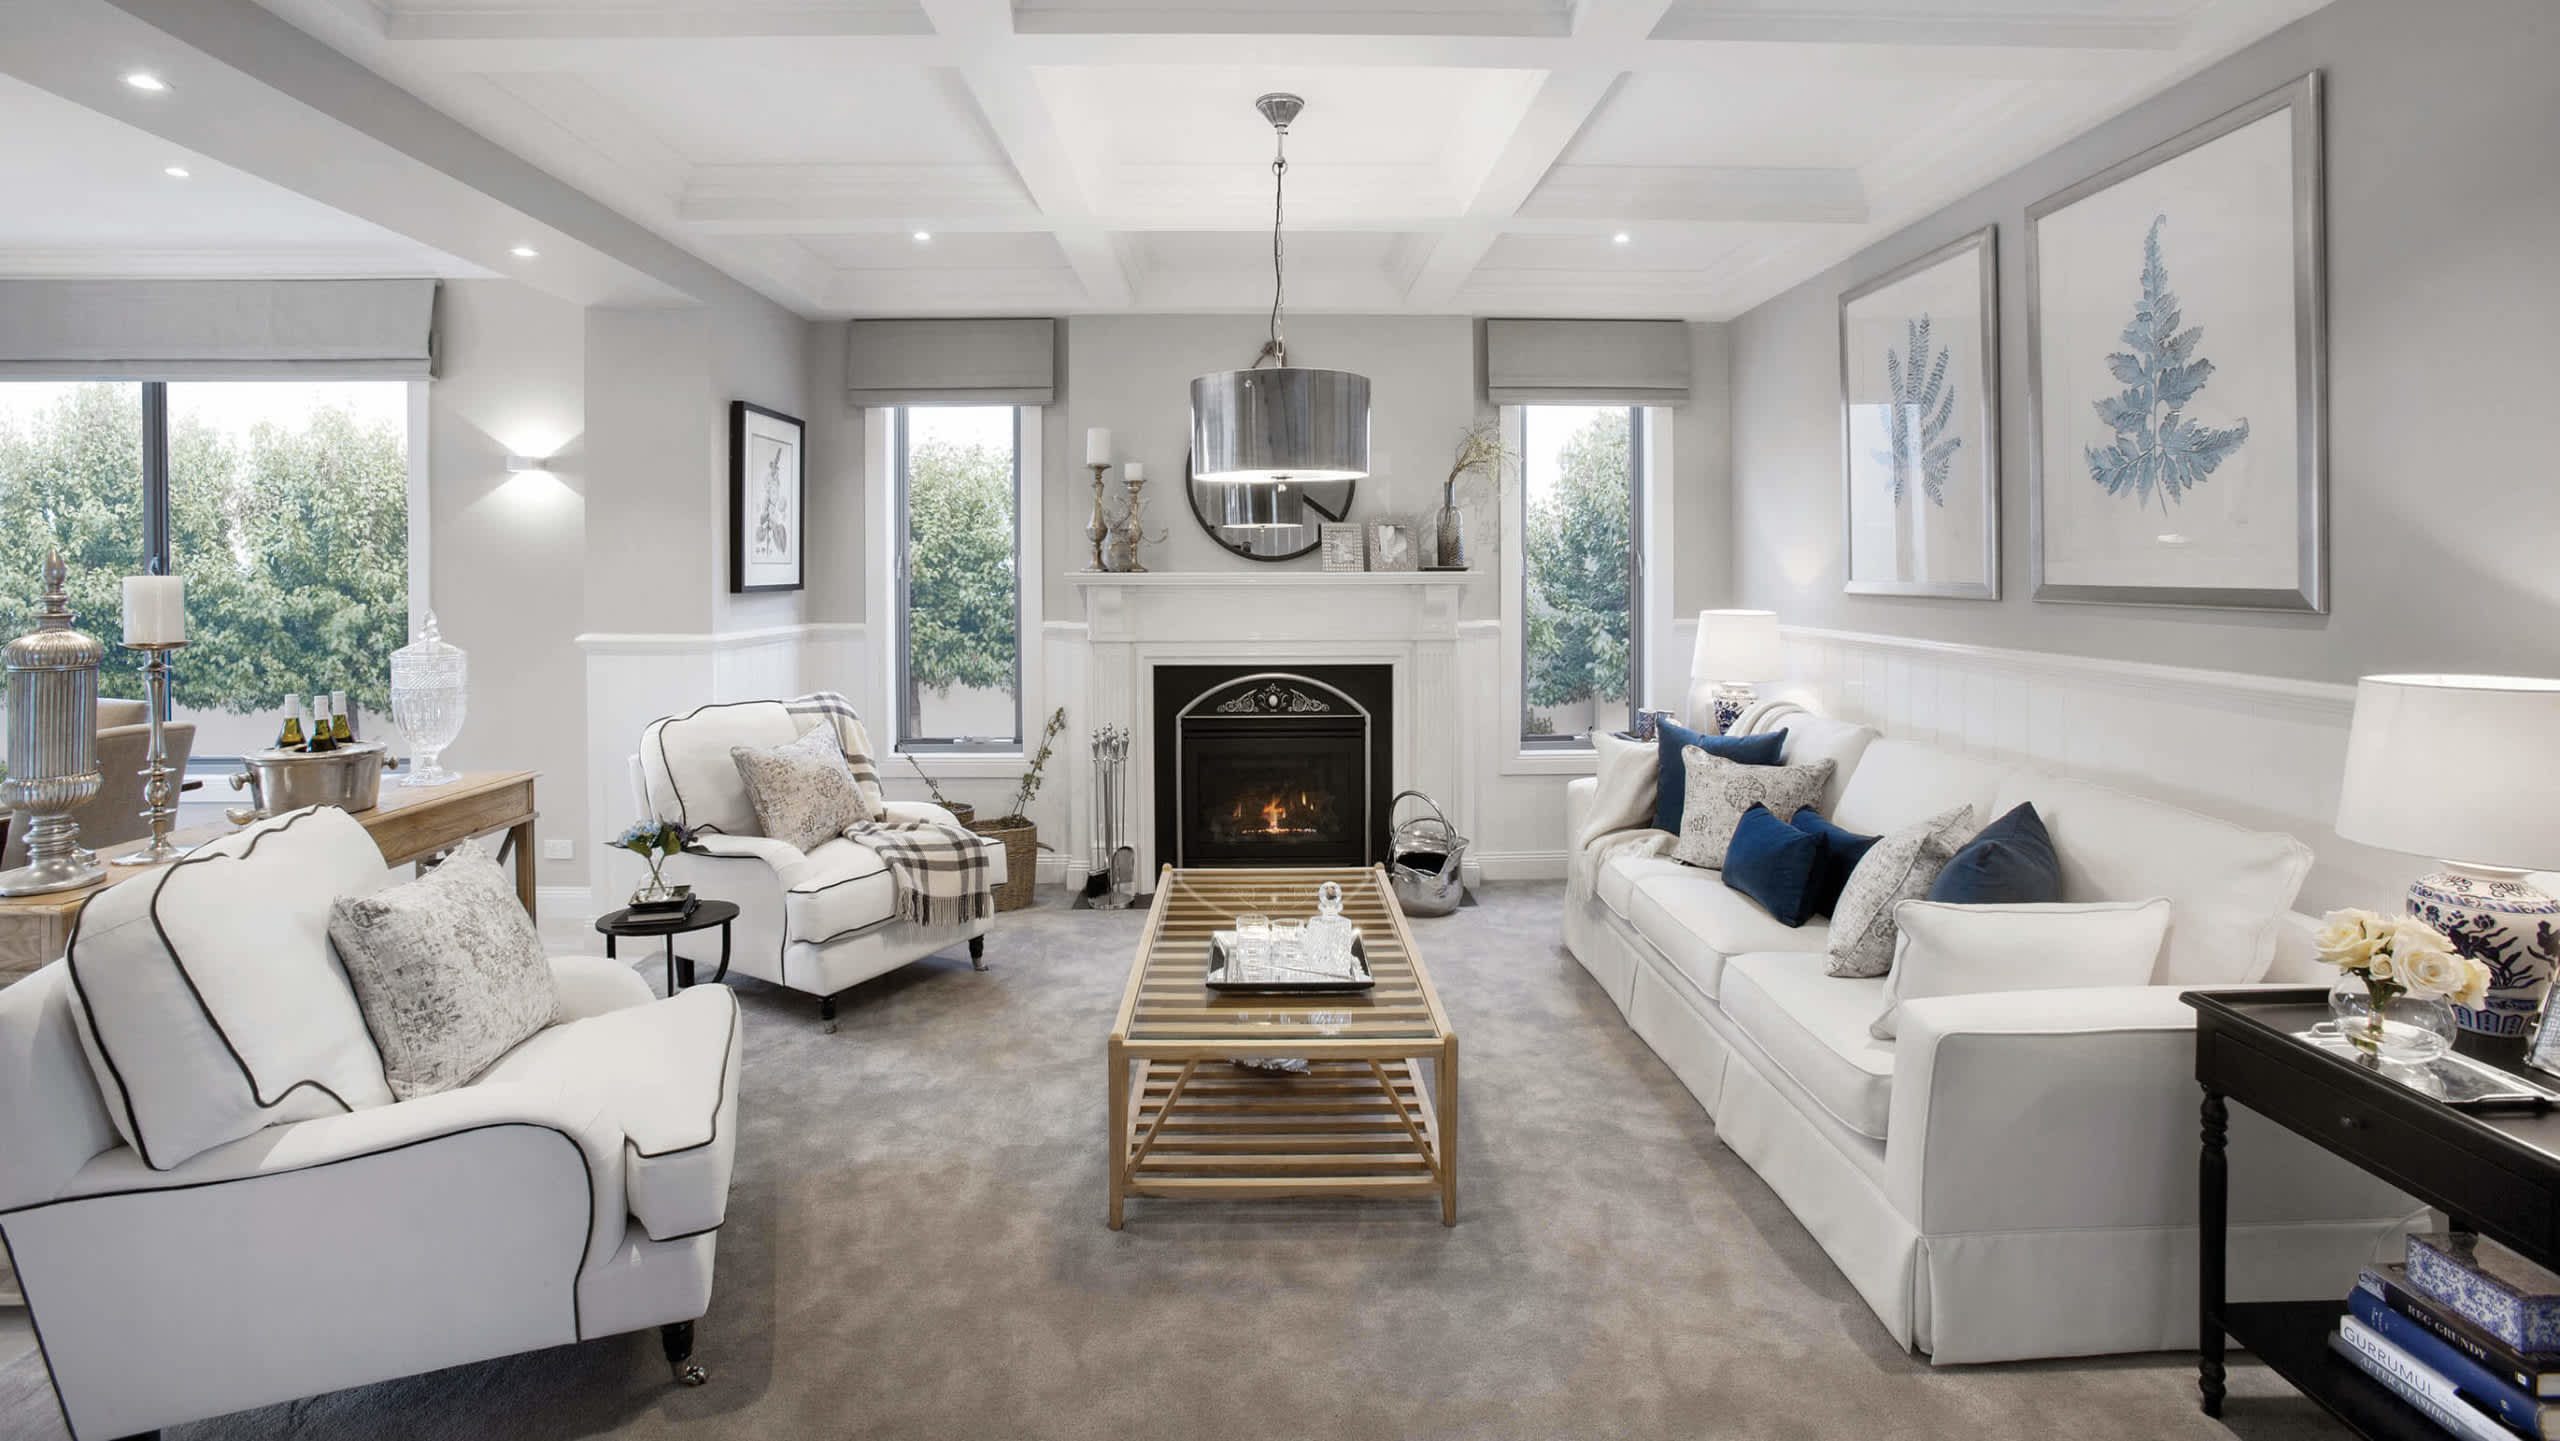 Creating cosy winter spaces